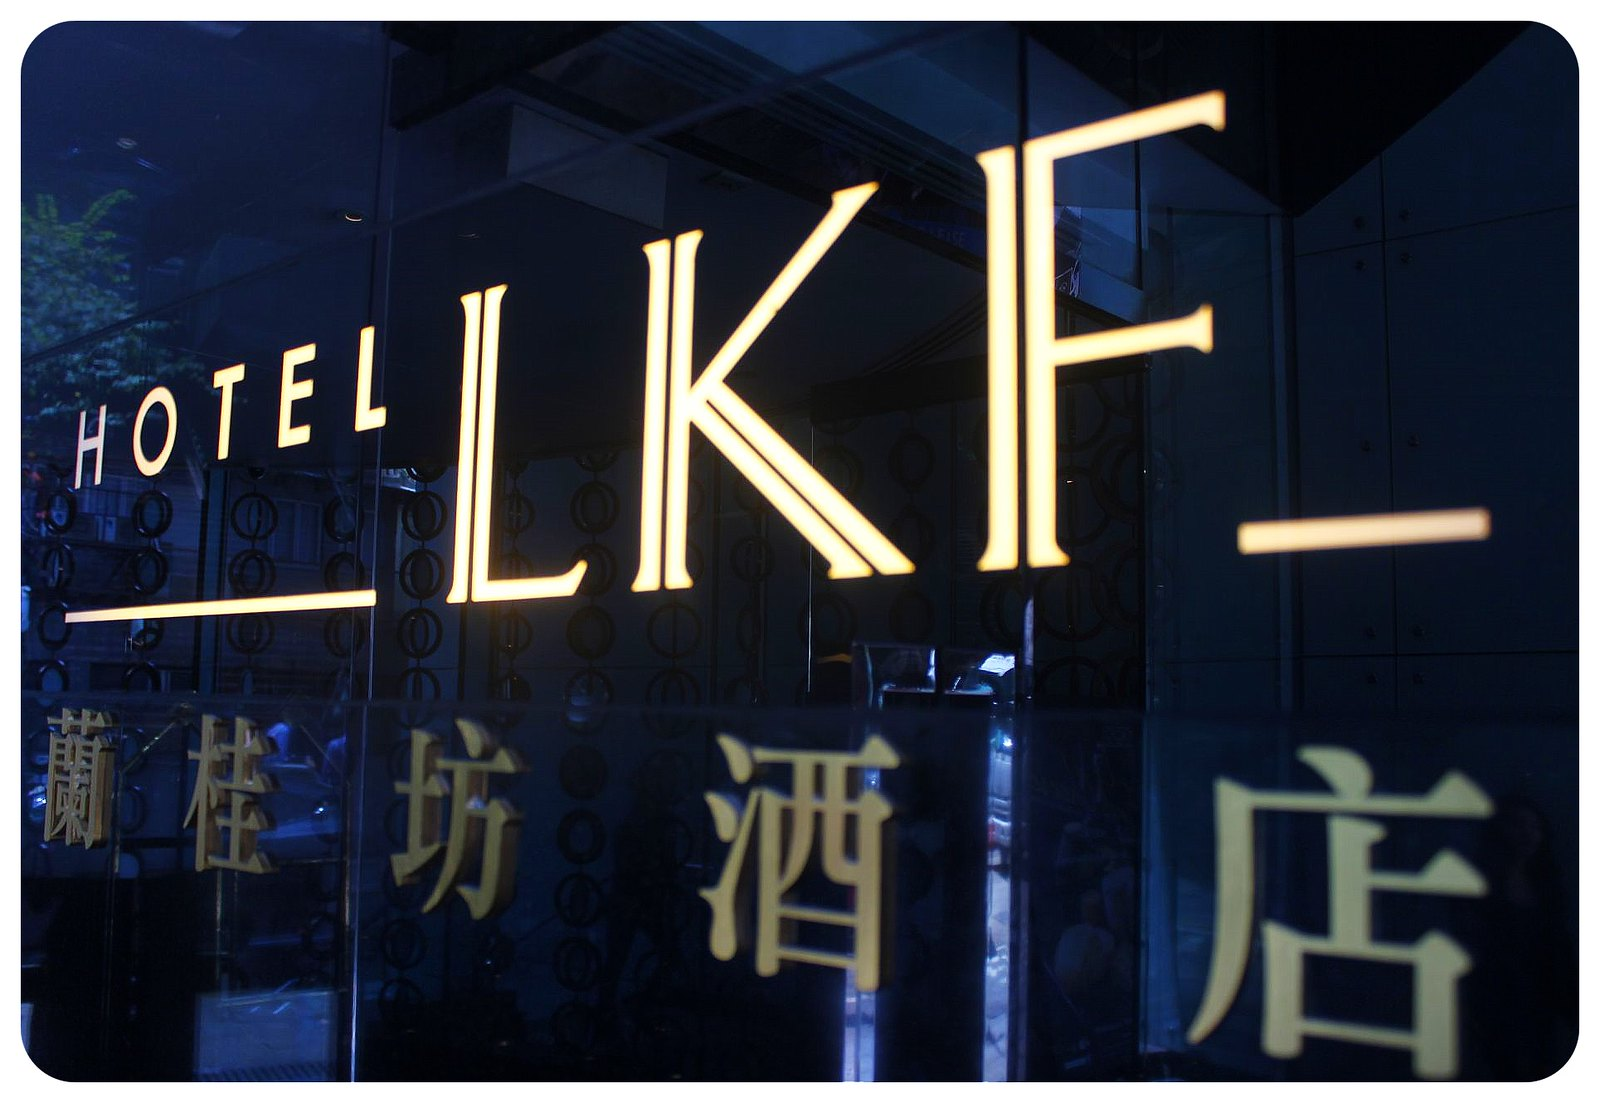 LKF hotel Hong Kong sign